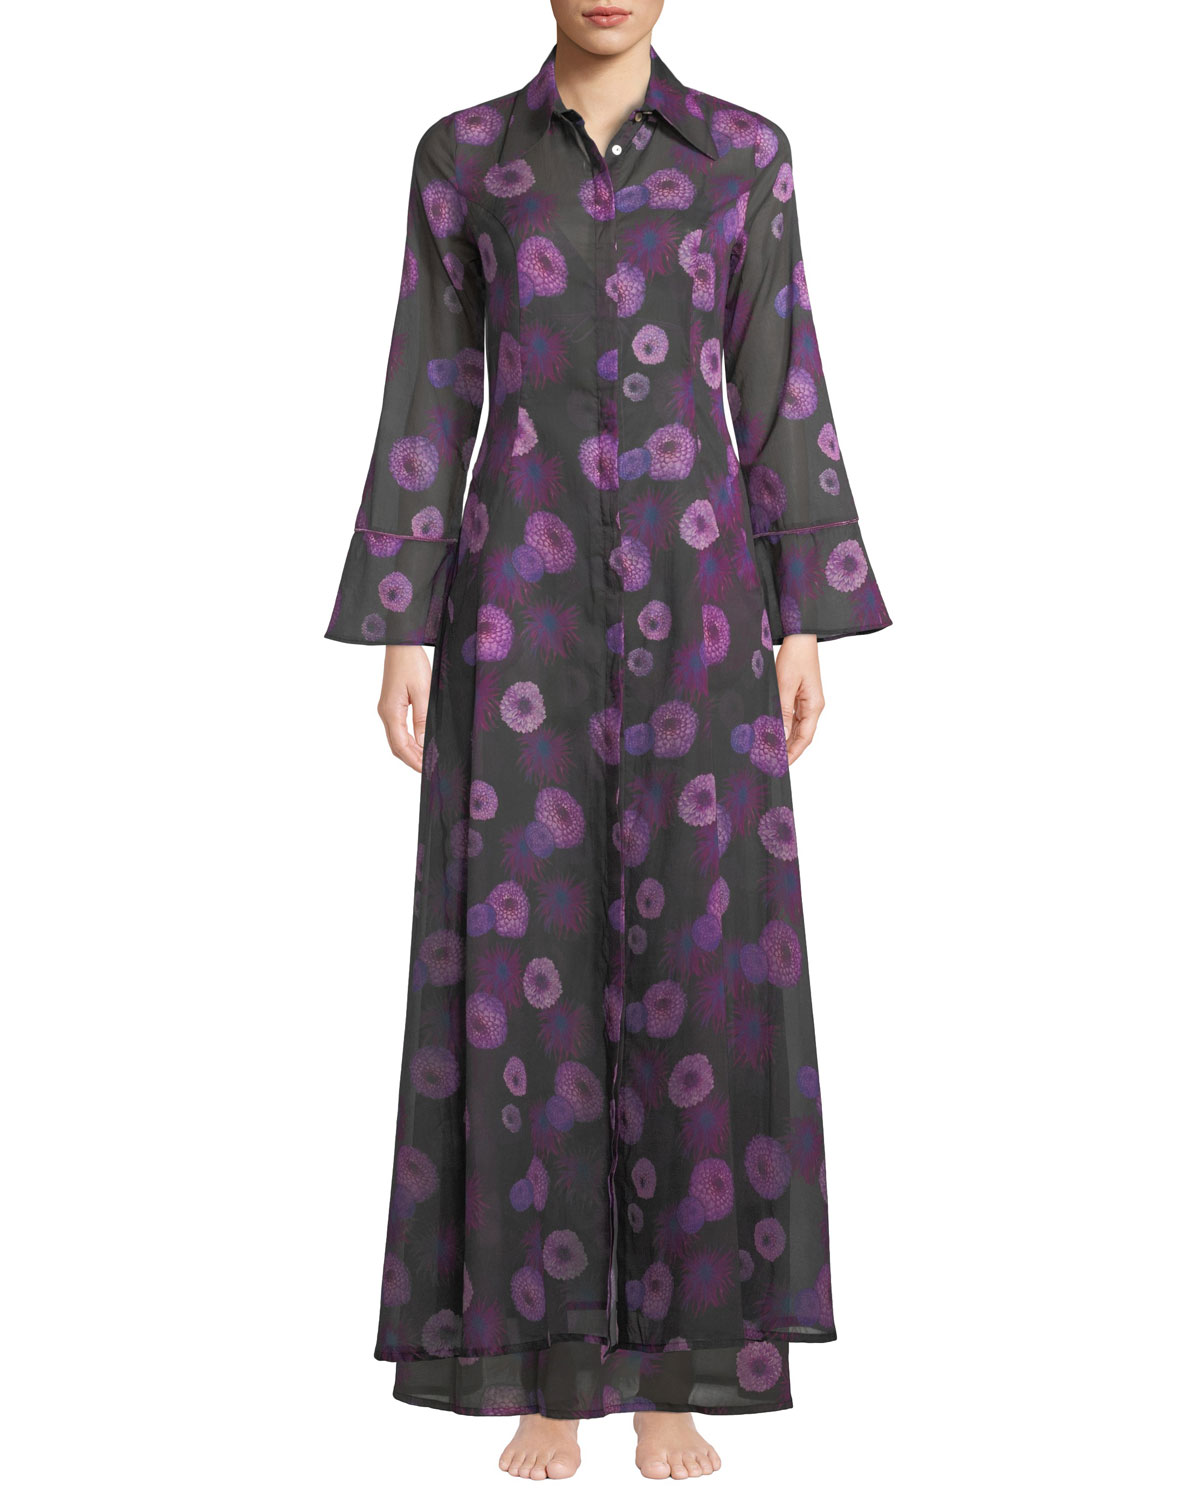 Hydra Floral-Print Button-Front Caftan in Purple Pattern